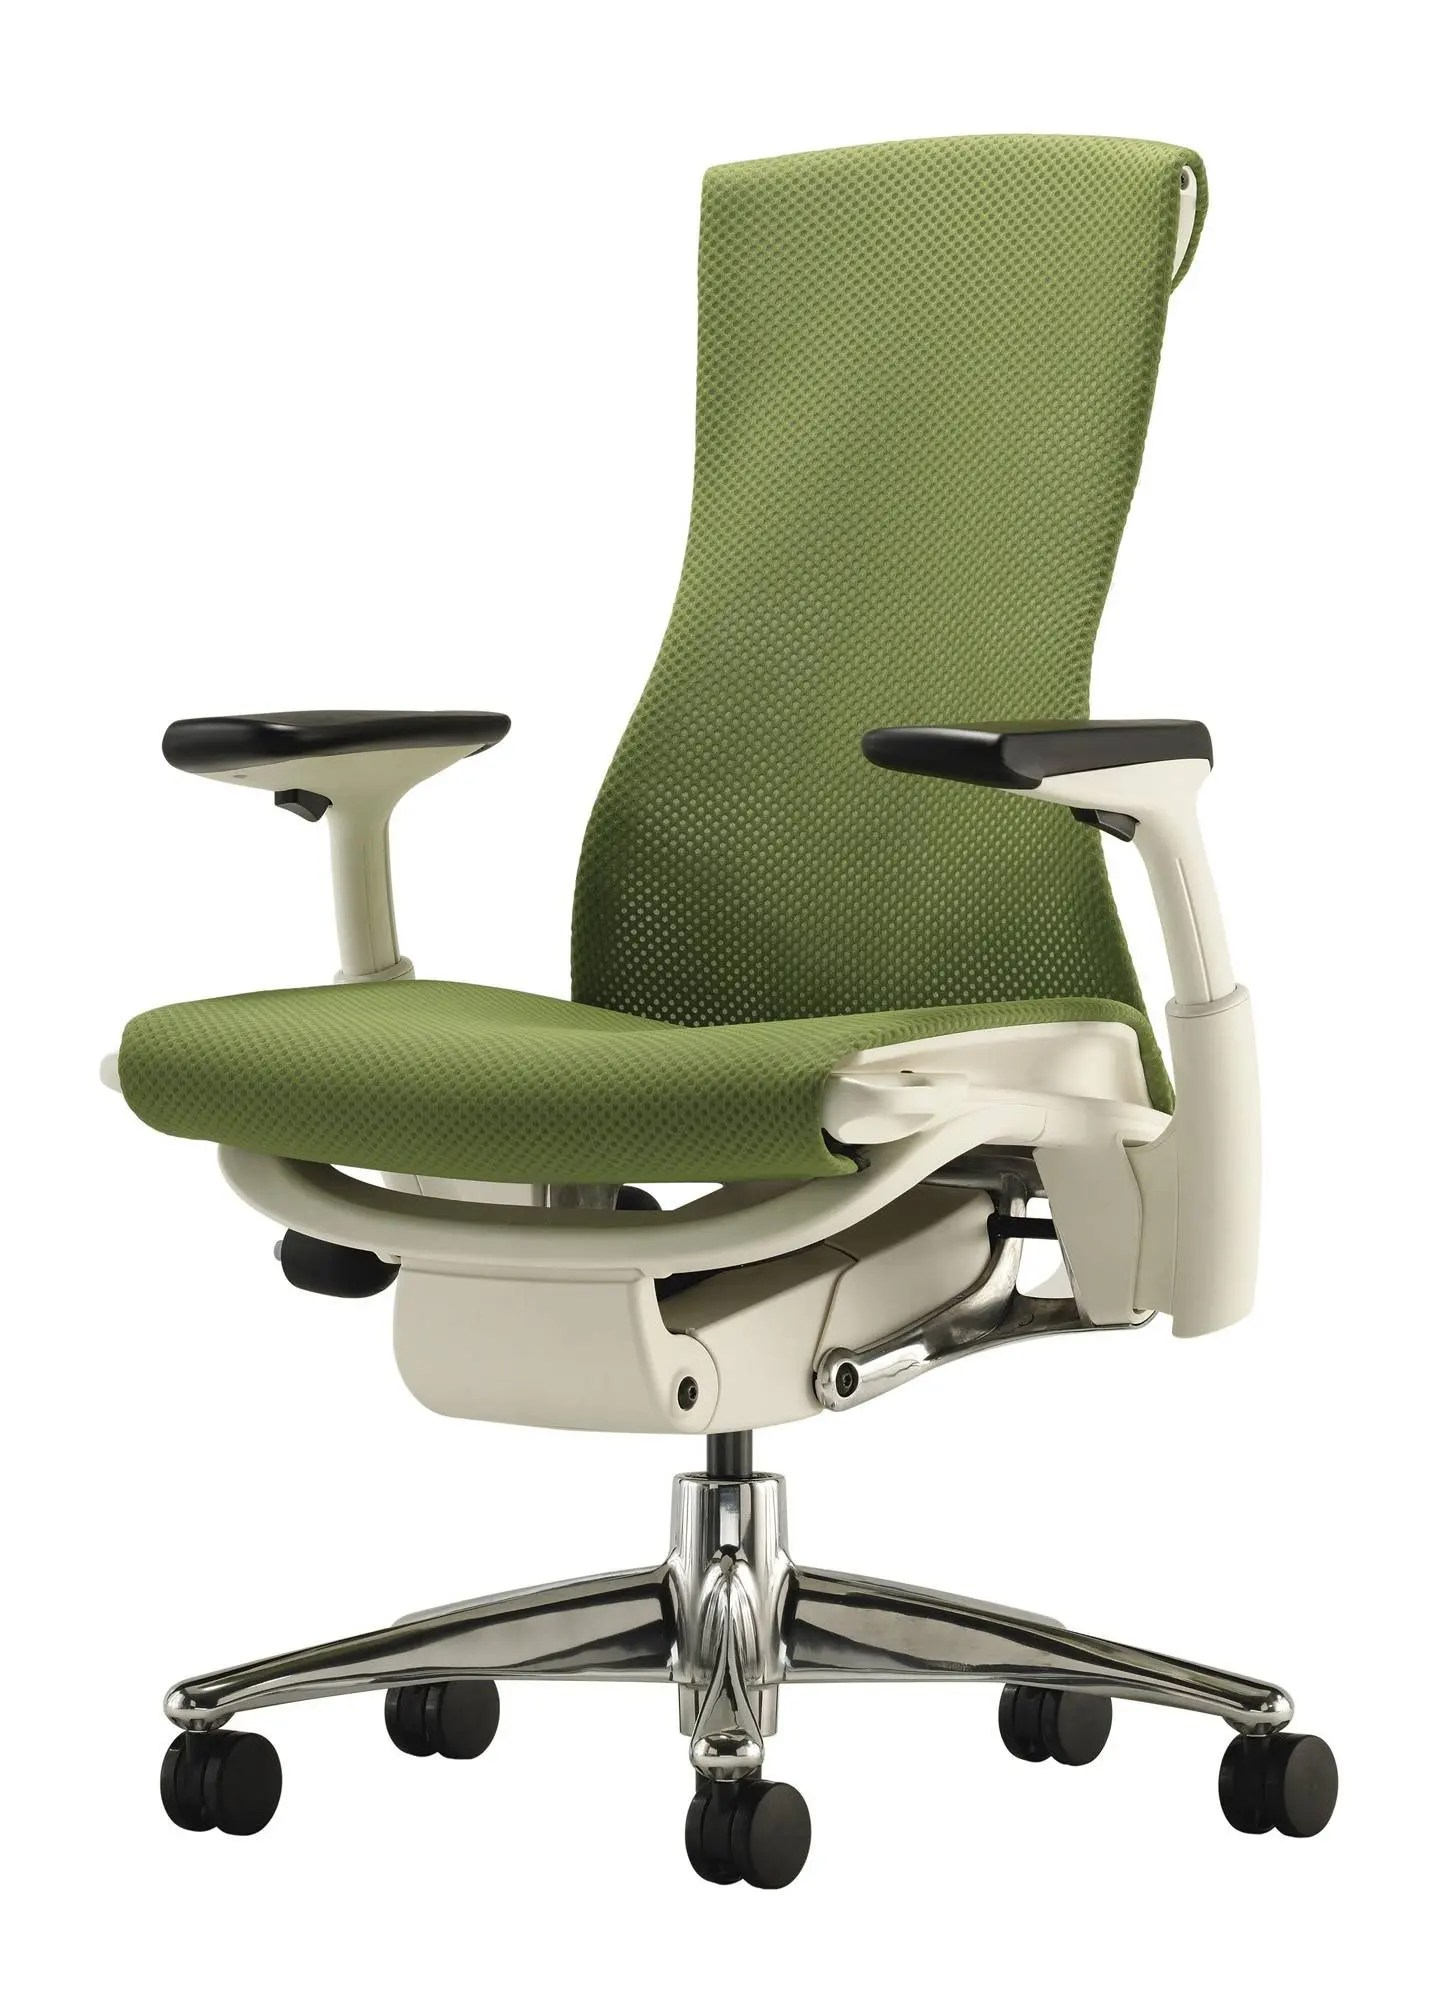 Herman Miller Embody Chair  Build Your Own  GR Shop Canada